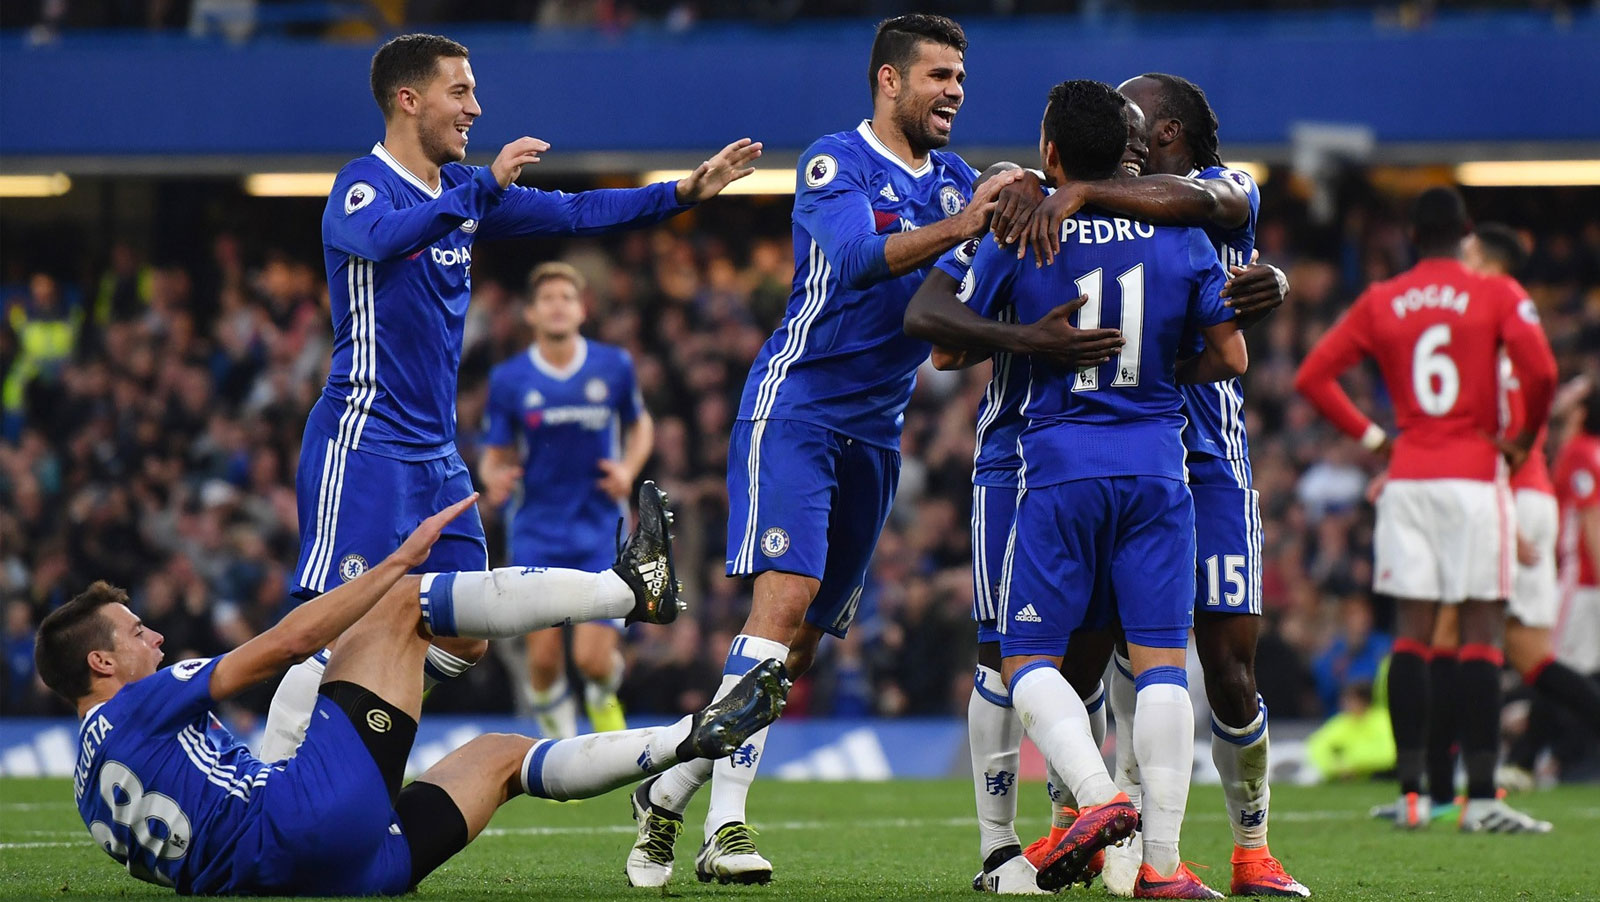 FA Cup Final Review: Chelsea beat United in what could be Conte's final game